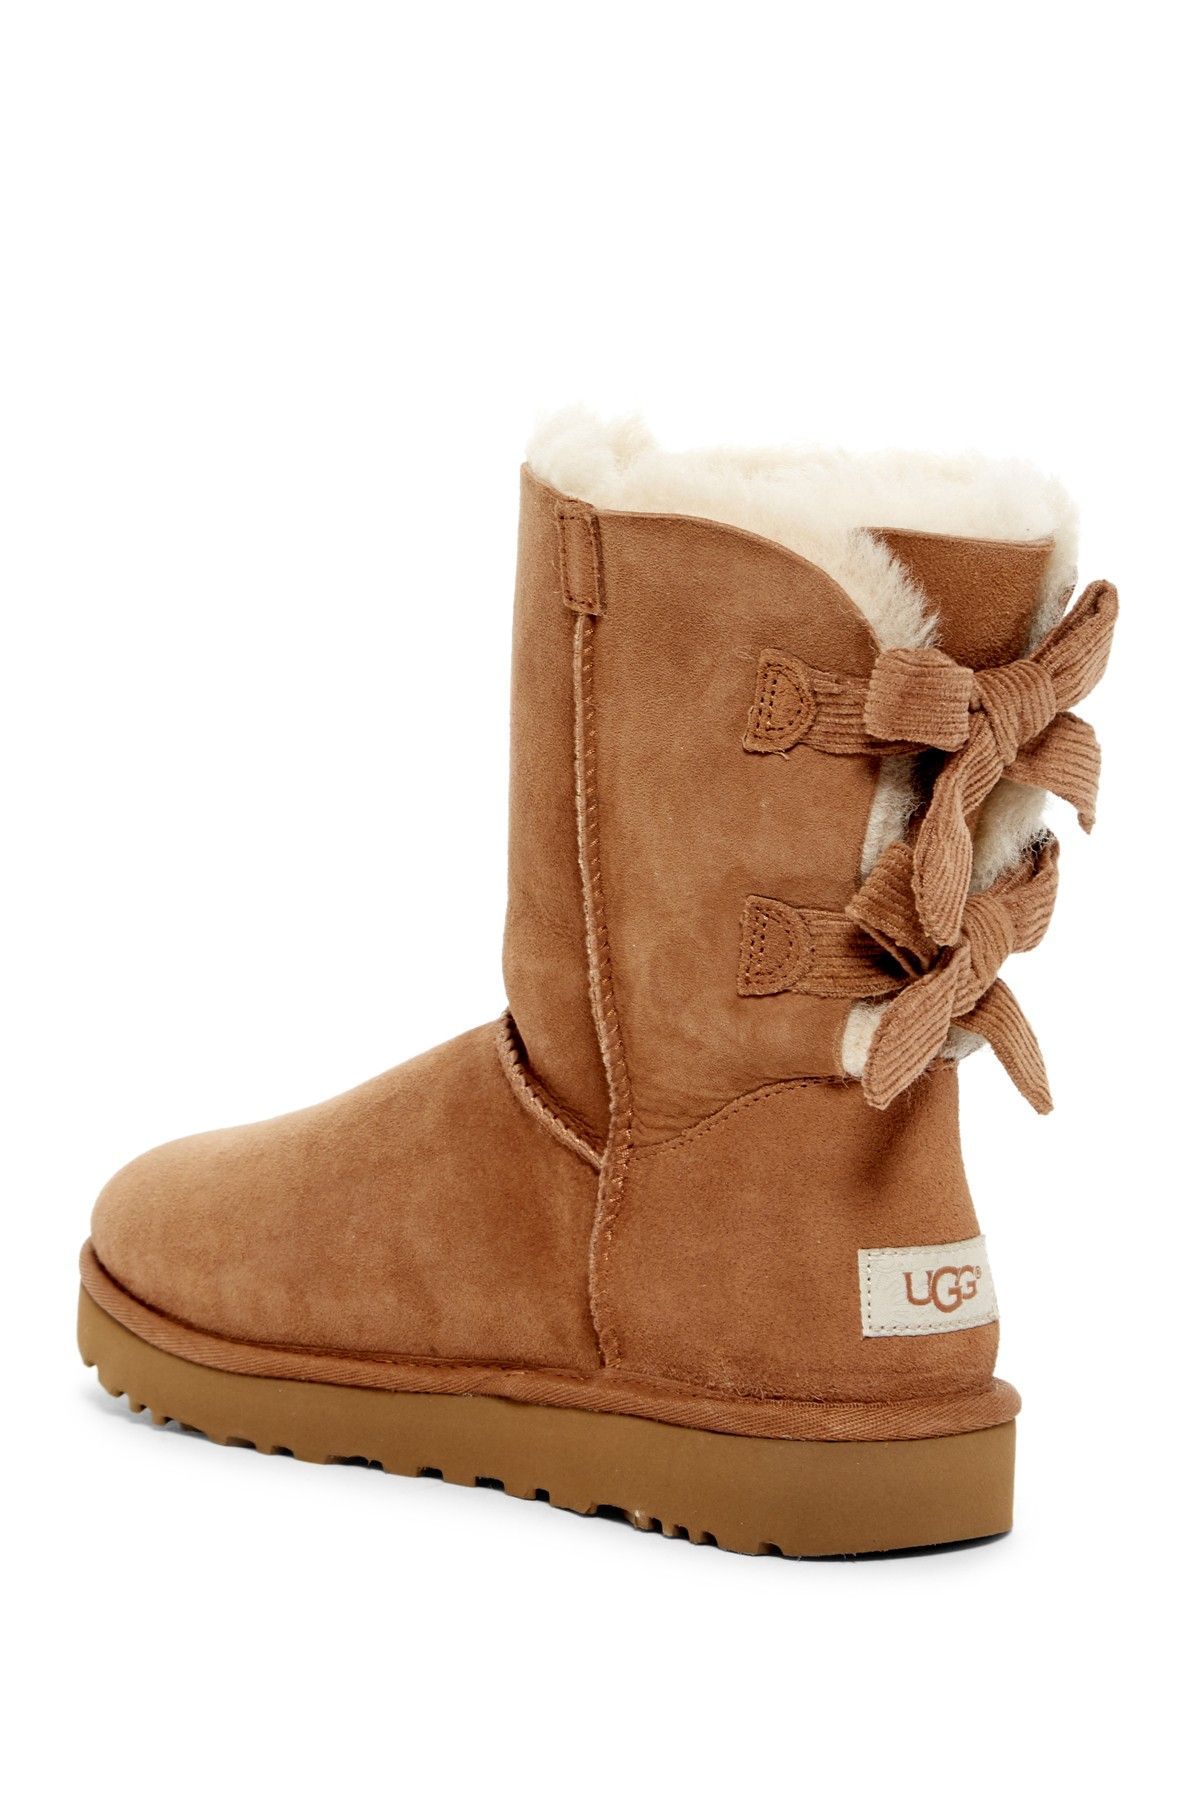 f9a5a202d13 cheap ugg australia genuine sheepskin bailey bow boot ac7c0 051e8